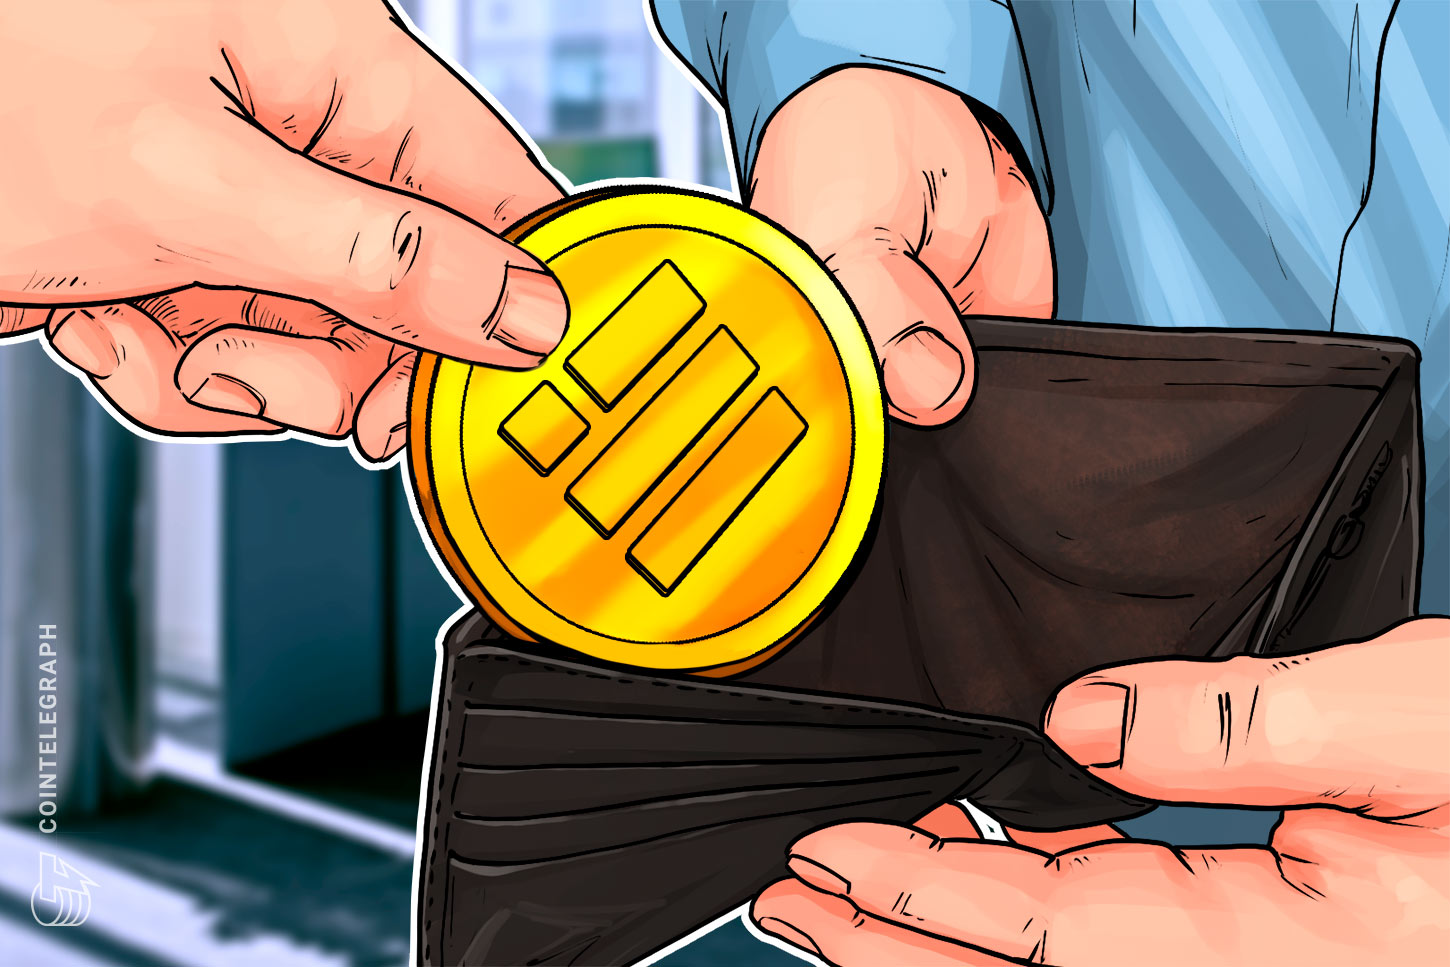 BitTorrent Adds Binance USD as a Payment Option